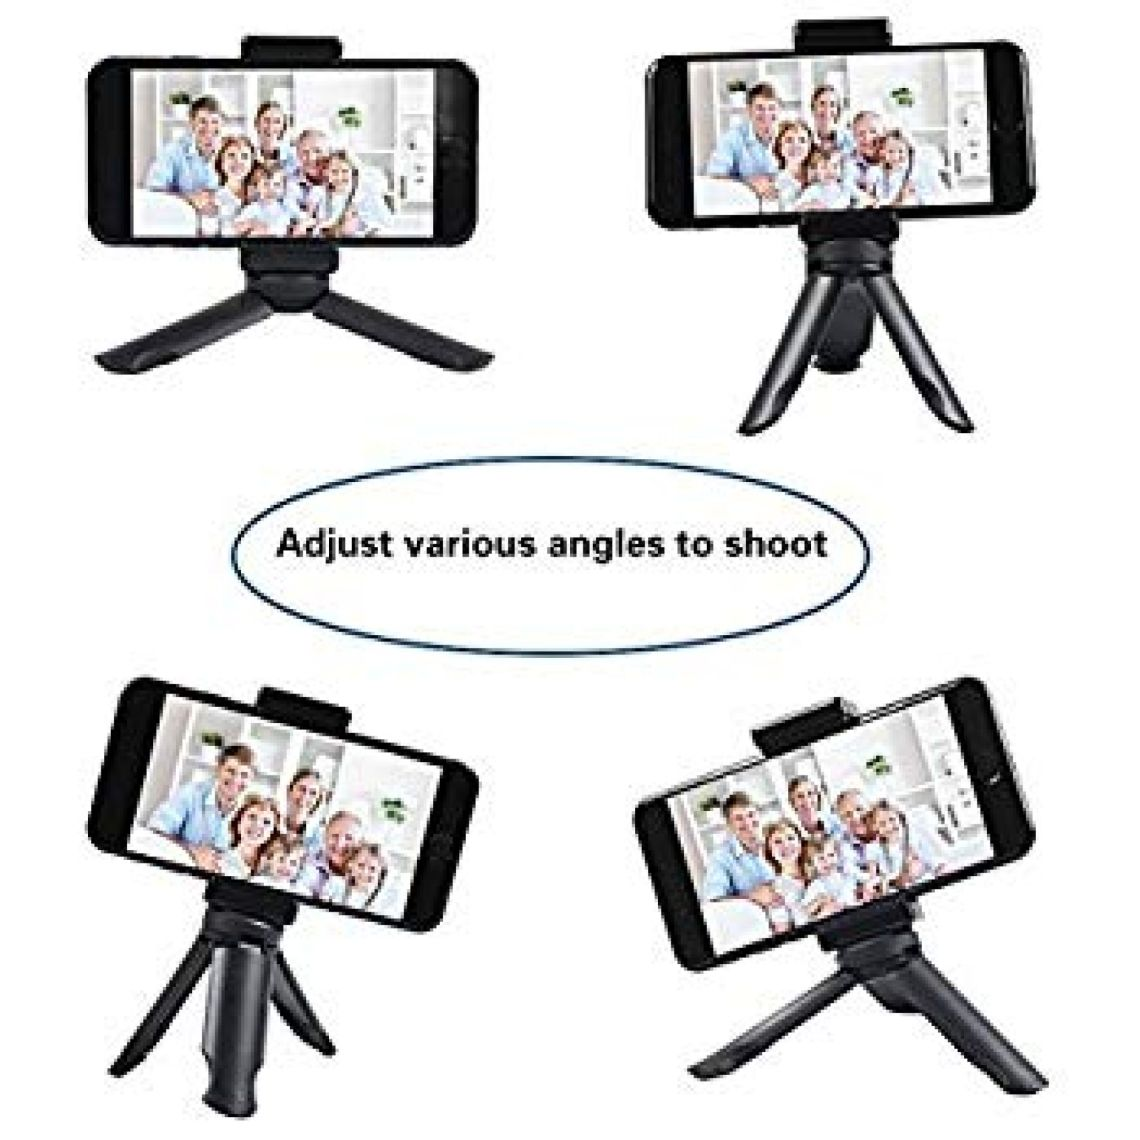 Amazon.com: Smartphone Selfie Tabletop Tripod Flexible Phone Tripod Portable tripod SHIHONG Adjustable Mini Travel Tripod Mount Gimbal Tripod Stand for iPhone and Small Camera: Cell Phones & Accessories